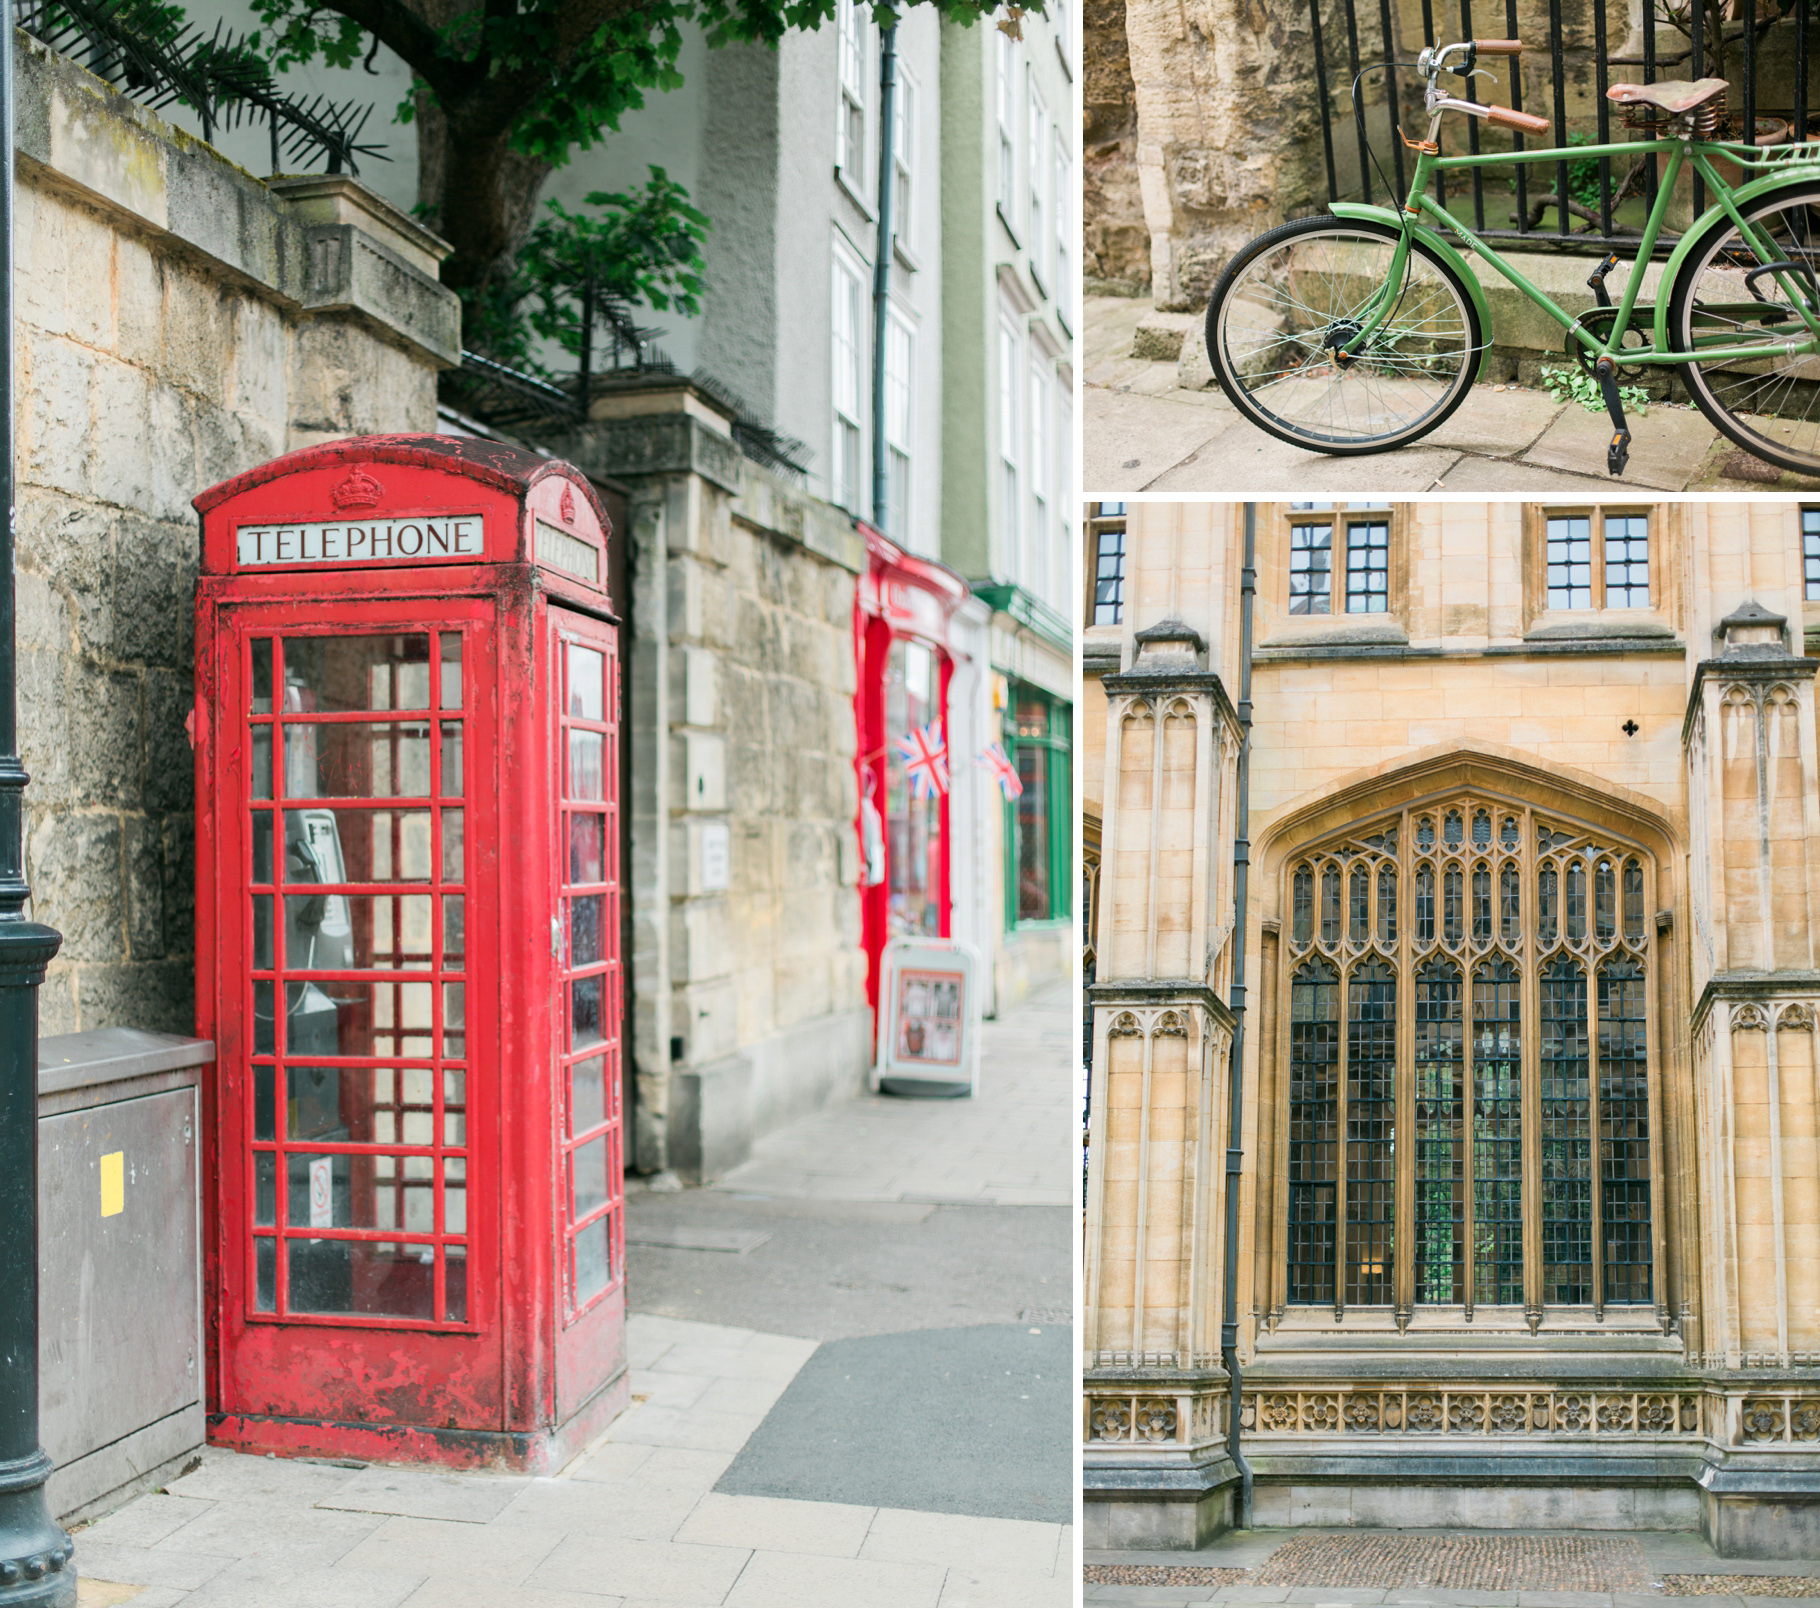 2-Oxford-England-Europe-Travel-Anniversary-Trip-Photography-by-Betty-Elaine